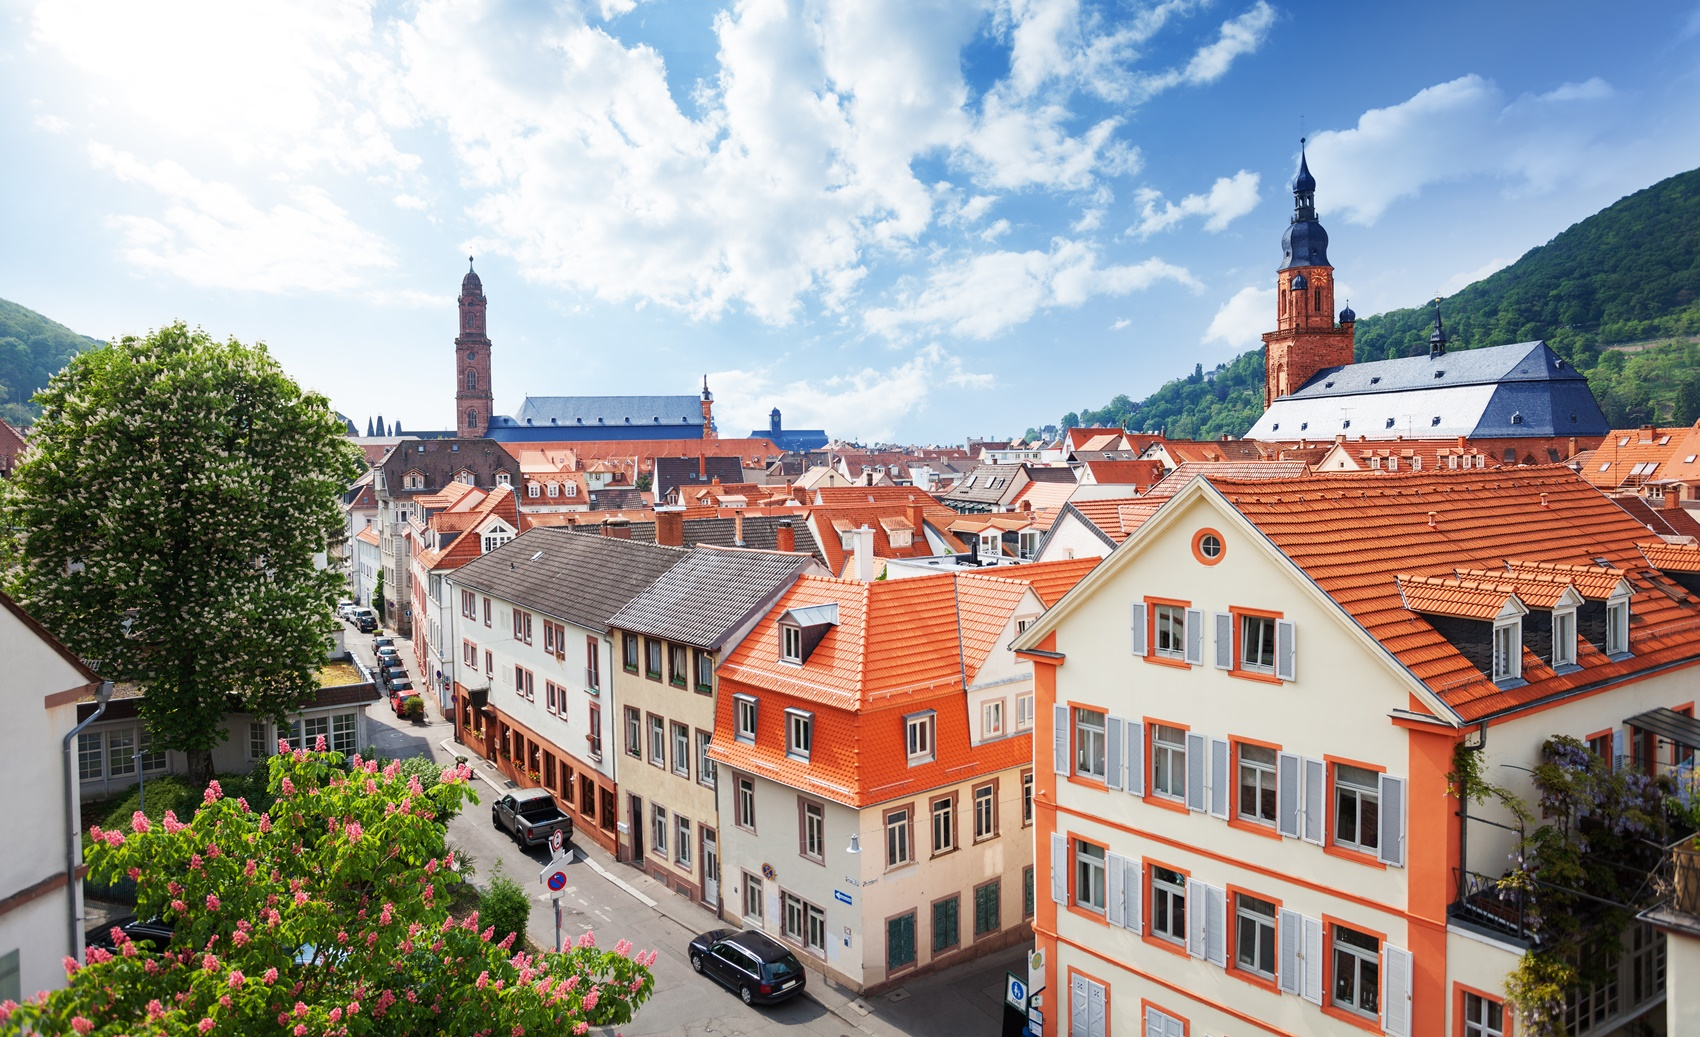 View of the street in Heidelberg, Germany